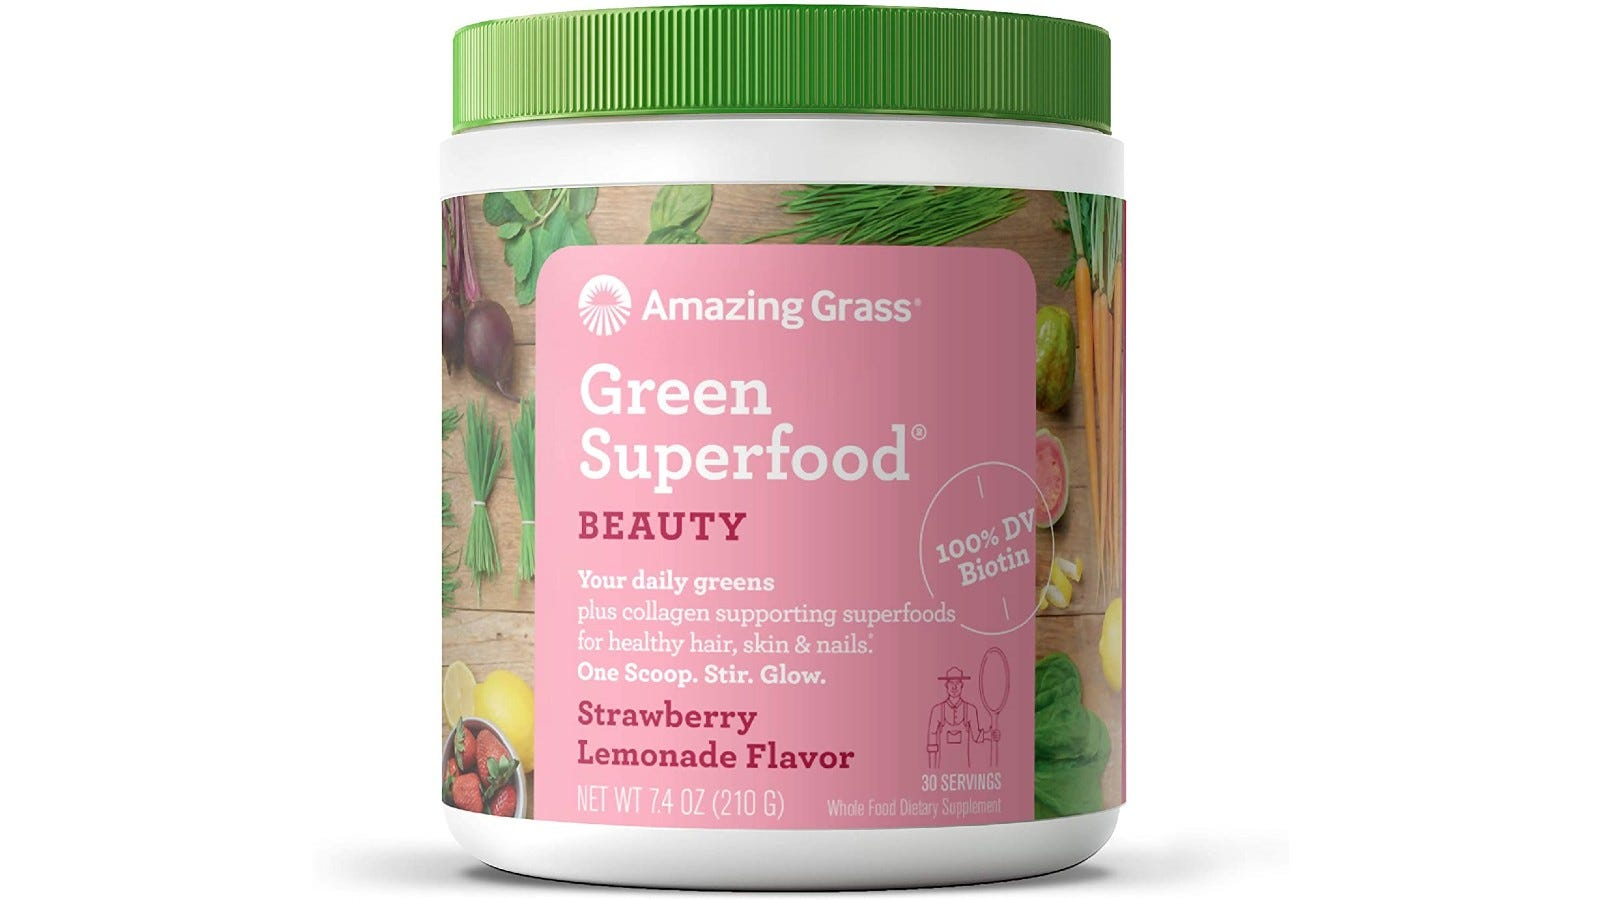 a container of Amazing Grass Green Superfood powder